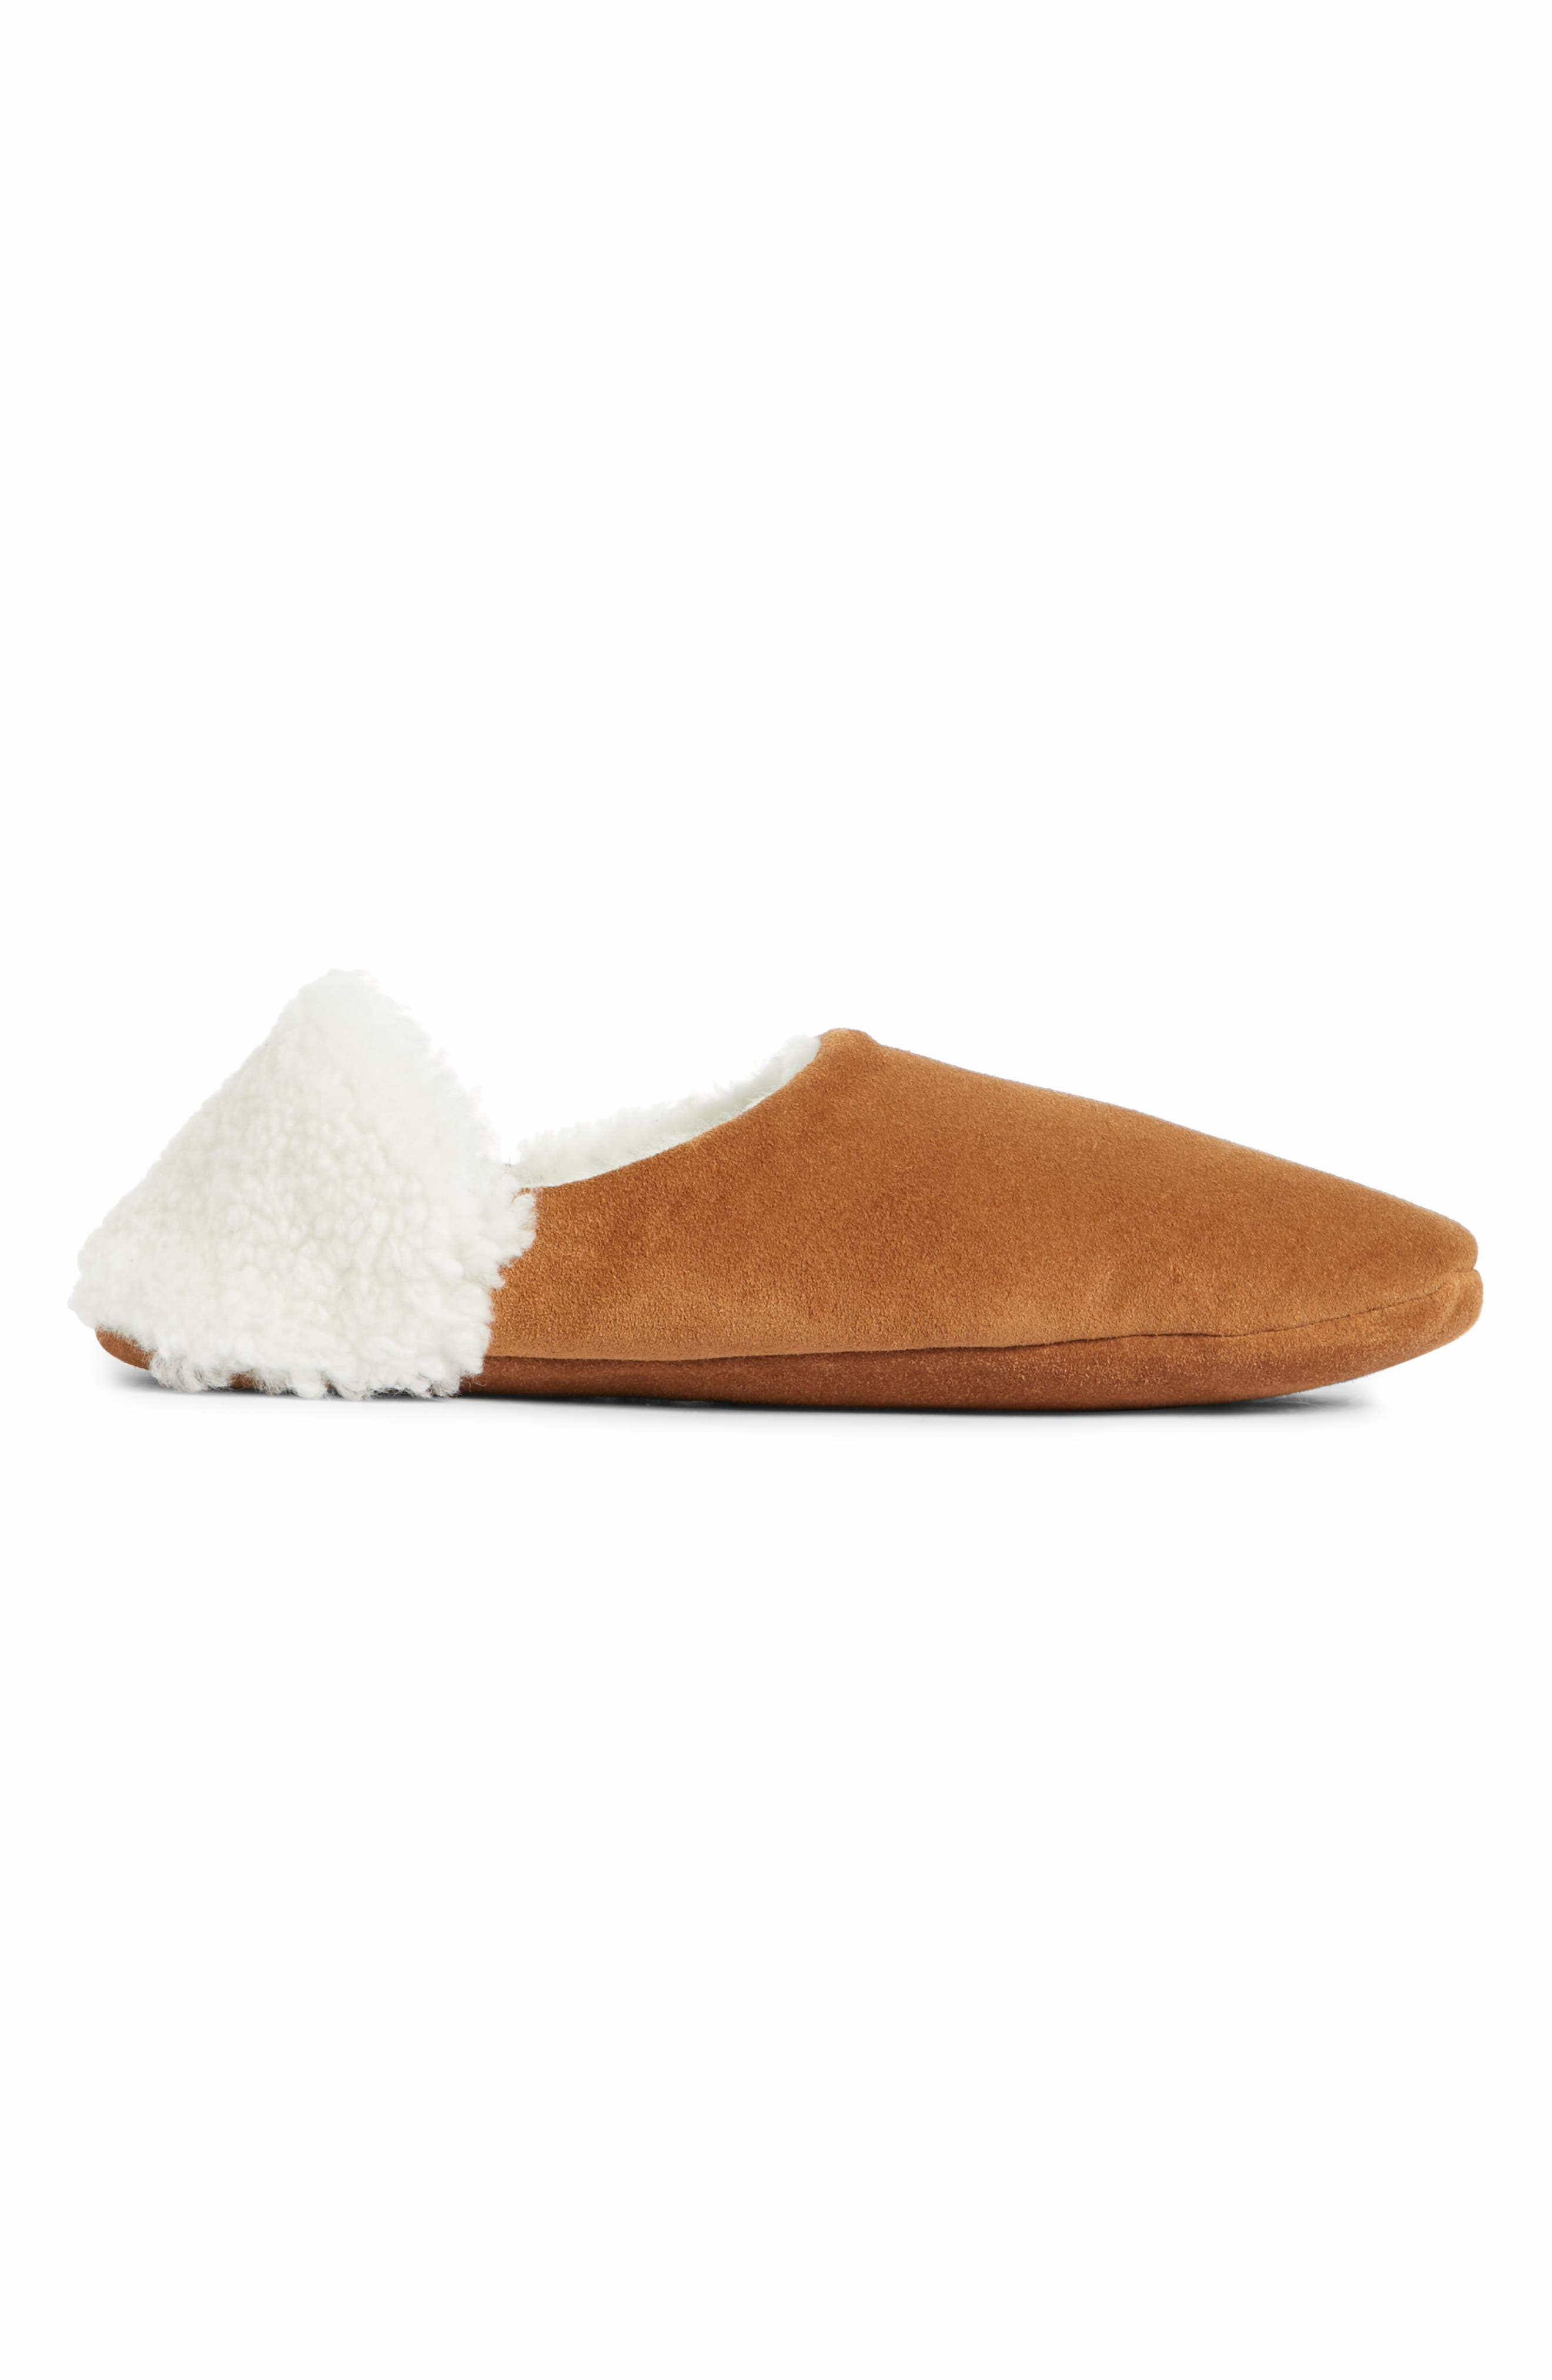 Moroccan Indoor Slipper,                             Alternate thumbnail 2, color,                             SADDLE/ IVORY